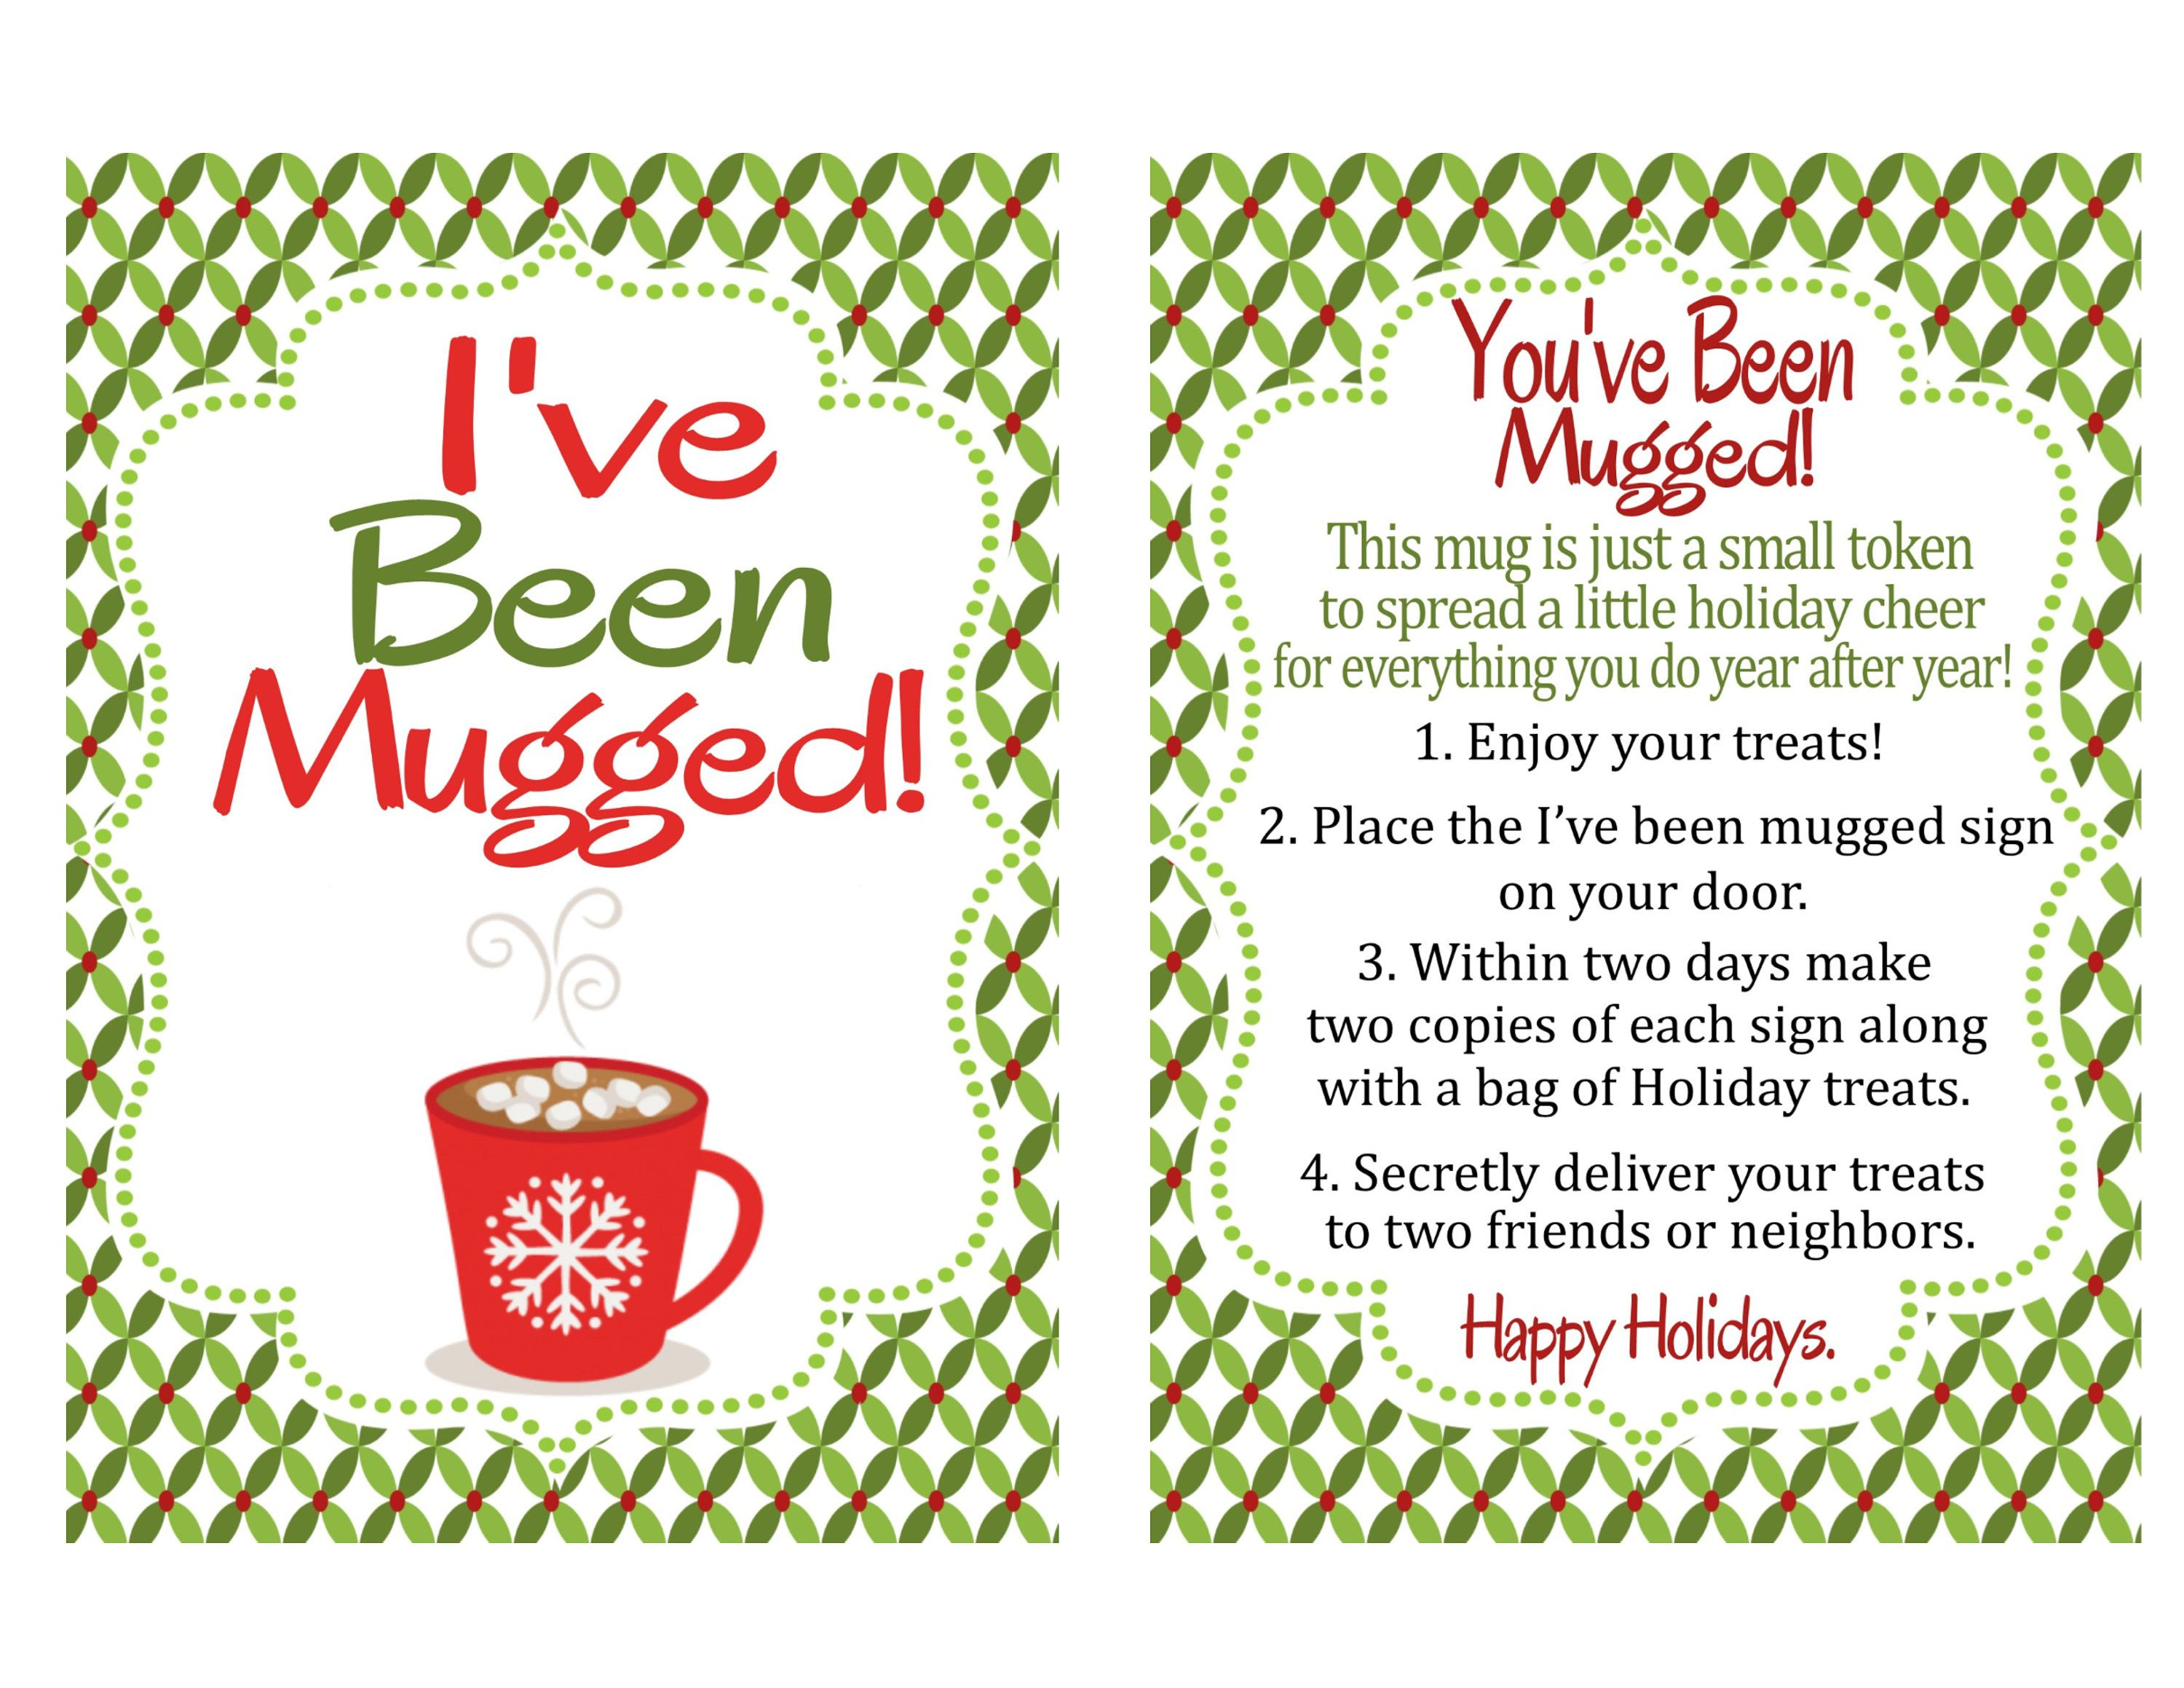 You Ve Been Mugged Printable Instructions Sign And Treat Bag Tag I Ve Been Mugged You Ve Been Mugged Printable Holiday Printables You Ve Been Elfed